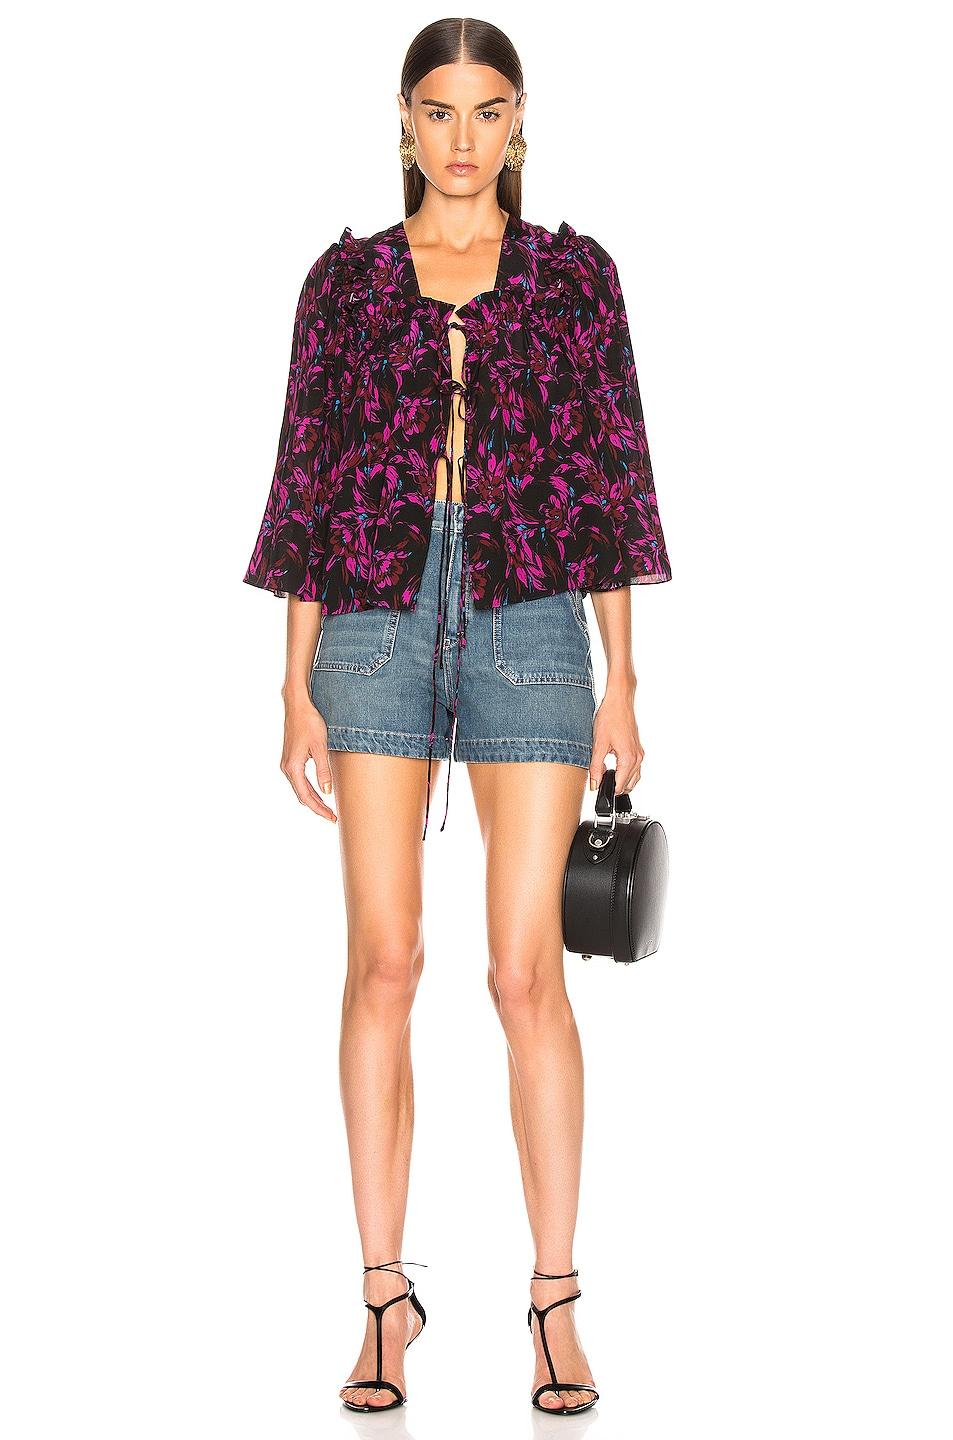 Image 4 of Les Reveries Tie Front Top in Wispy Floral Black